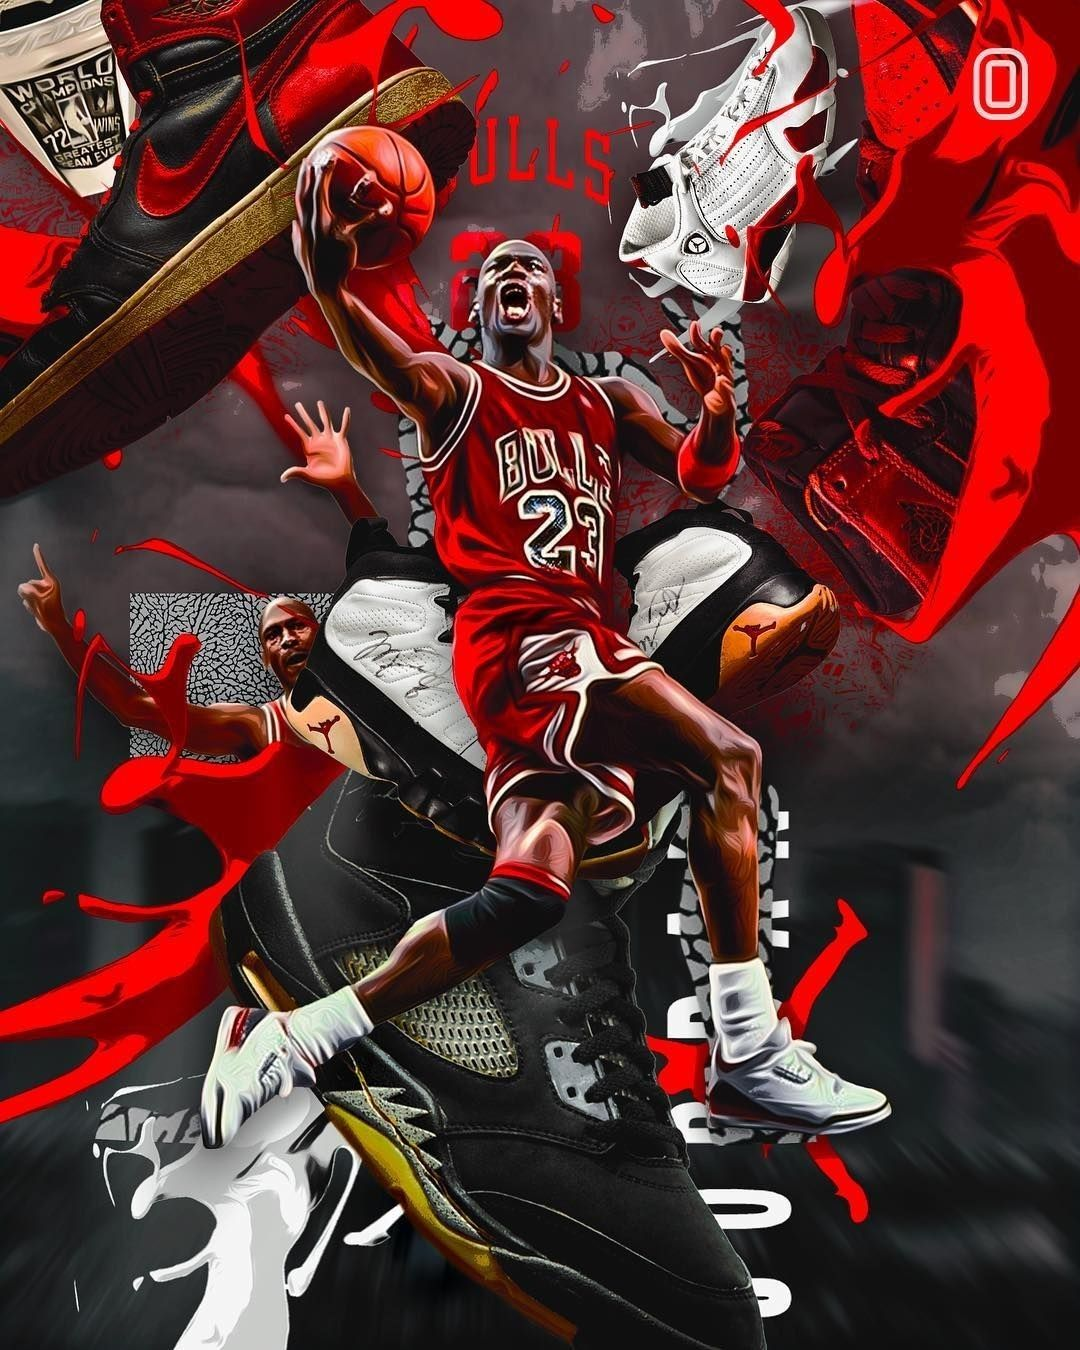 Michael Jordan's wallpapers in 2020 Michael jordan